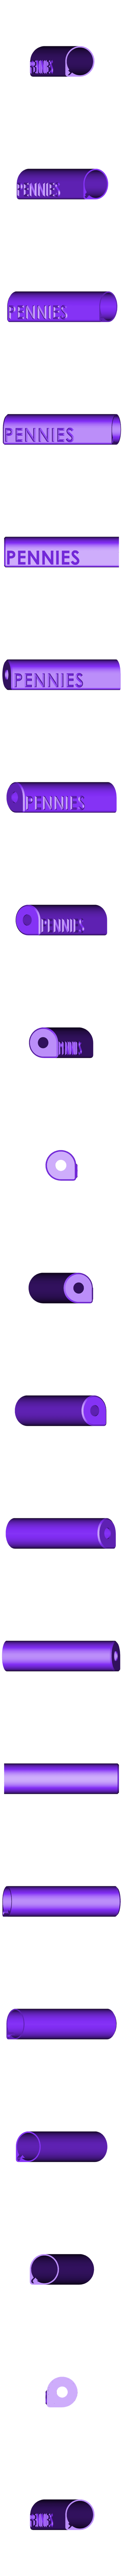 Penny Roll.stl Download free STL file Coin Rolls • Design to 3D print, Hom3d